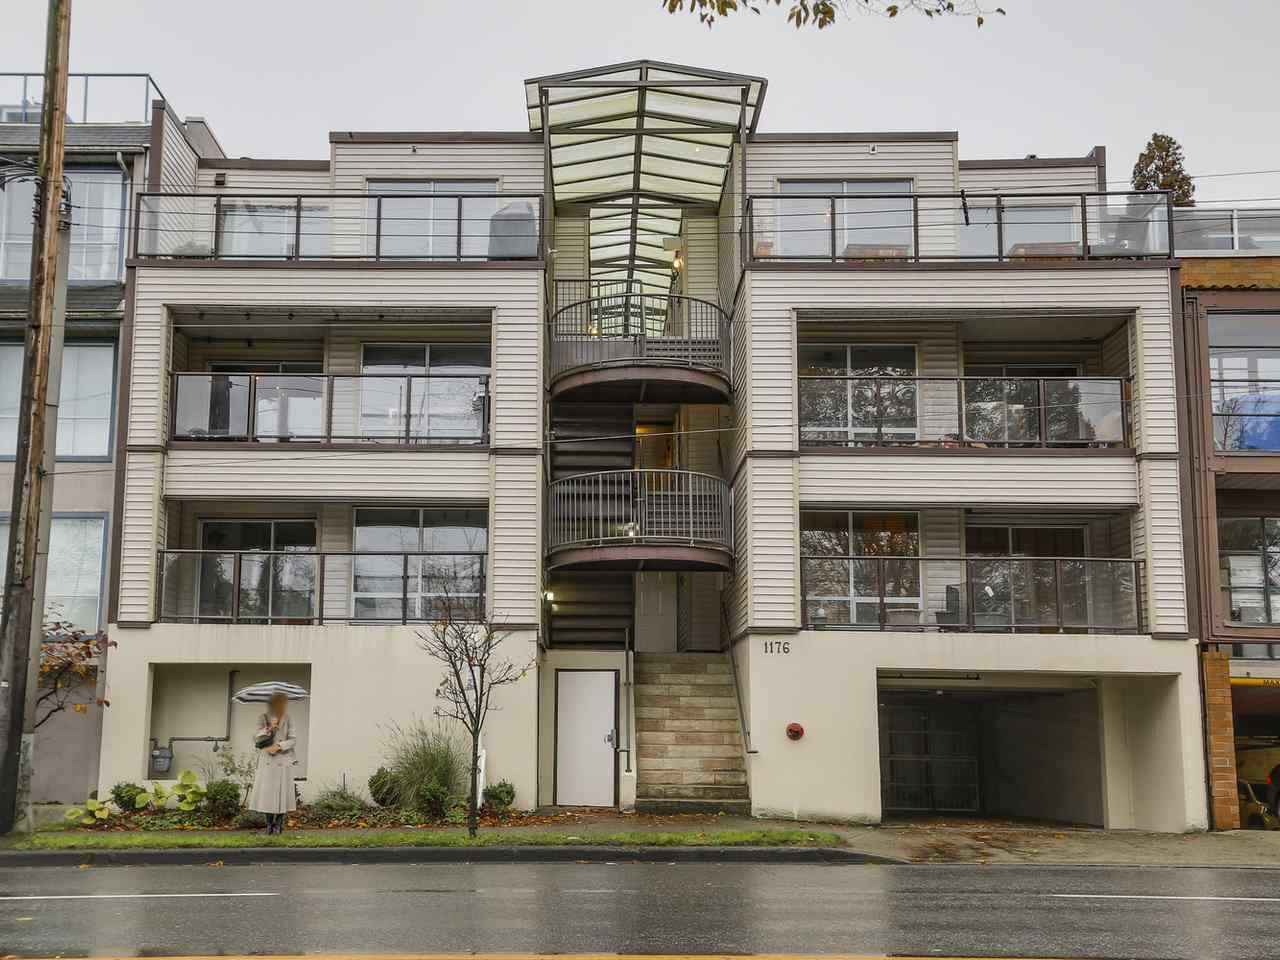 """Main Photo: 302 1176 W 6TH Avenue in Vancouver: Fairview VW Condo for sale in """"ALDER HEIGHTS"""" (Vancouver West)  : MLS®# R2118952"""